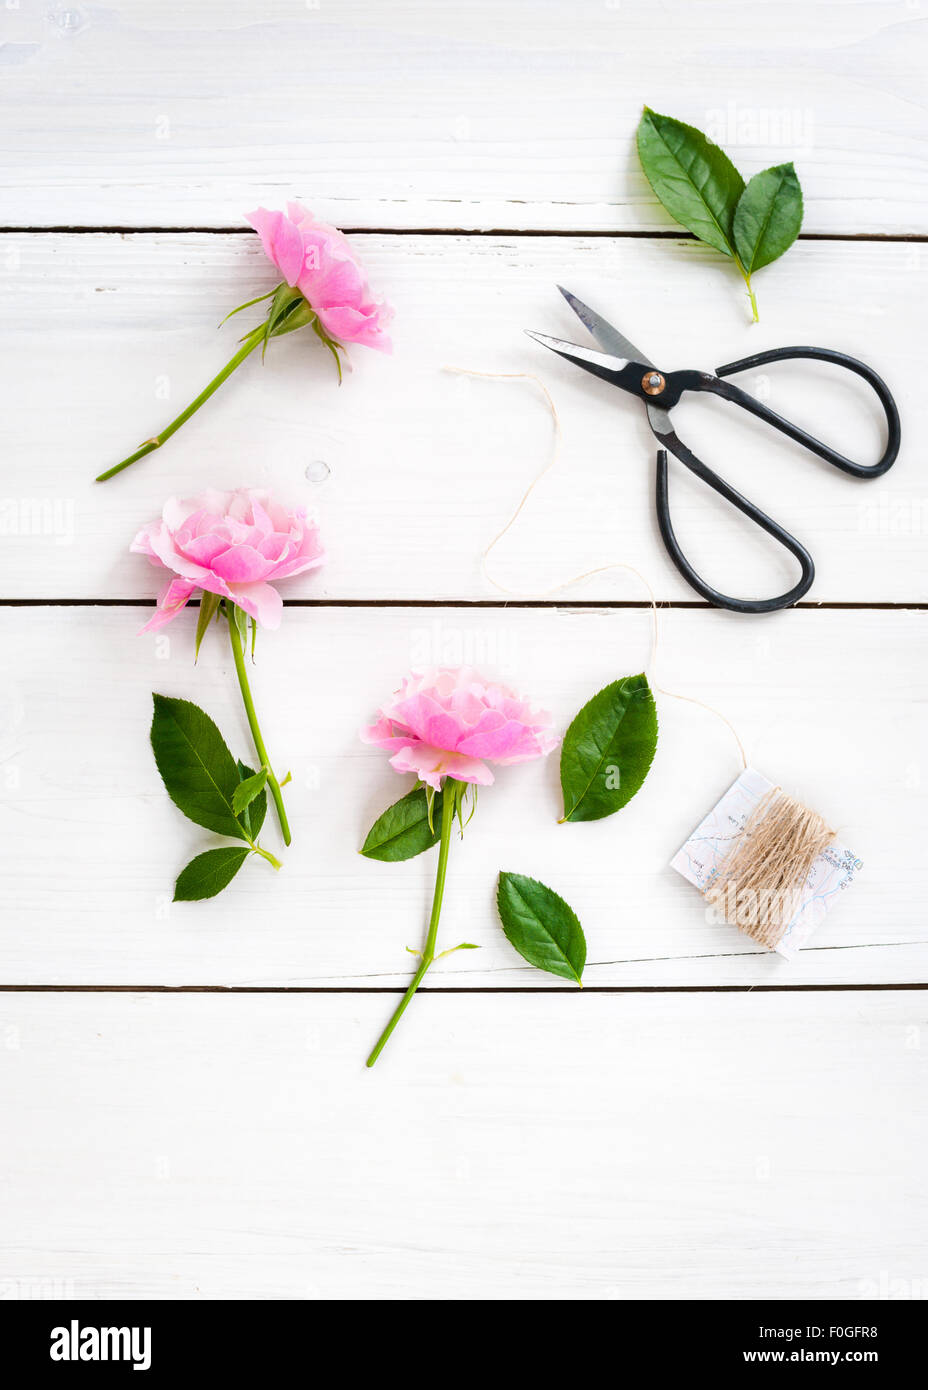 three cut pink roses with twine and black bonsai scissors - Stock Image